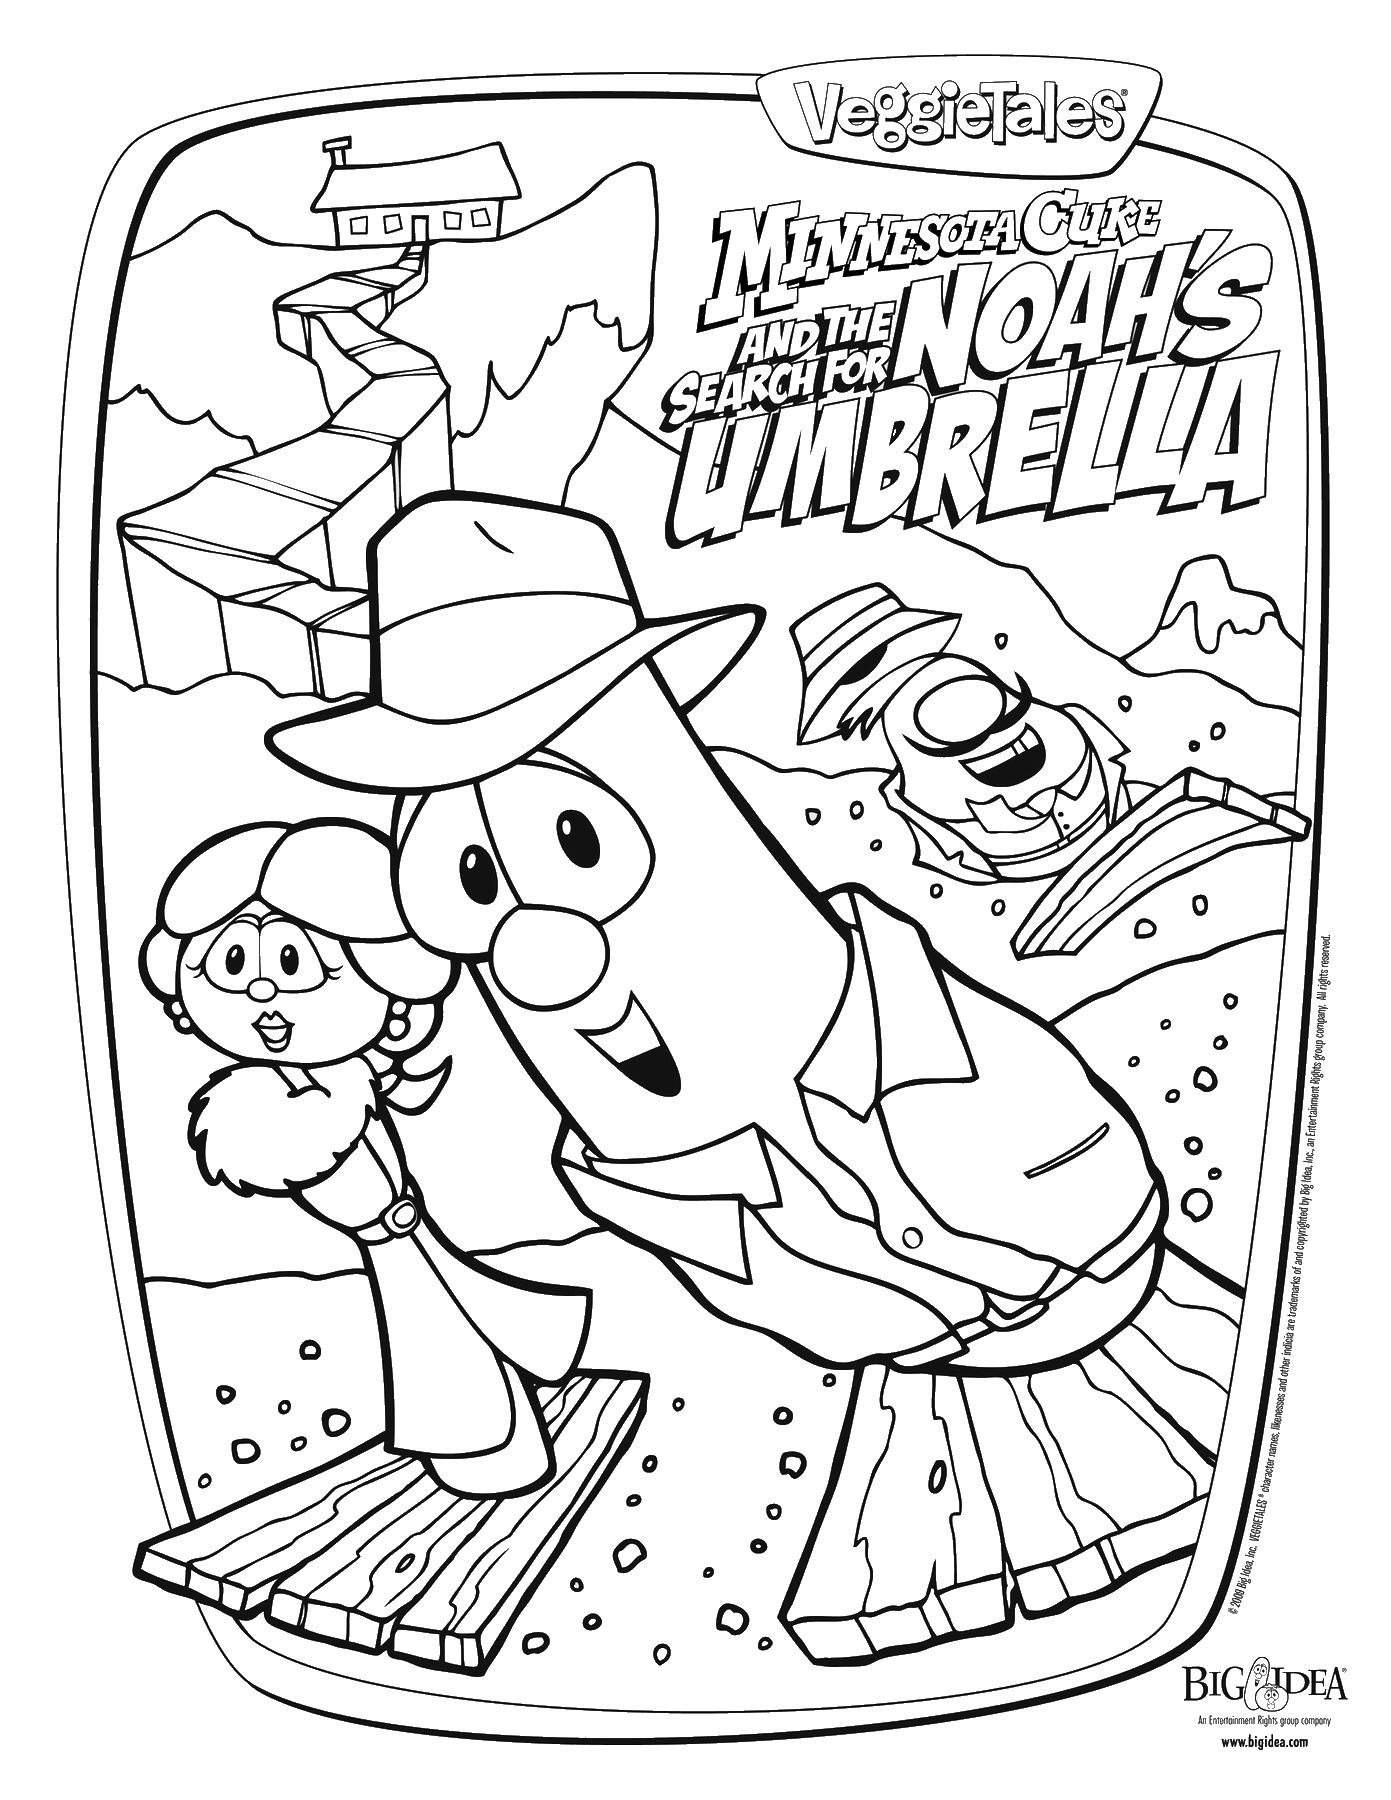 veggietales coloring sheets veggie tales coloring pages coloring veggietales sheets